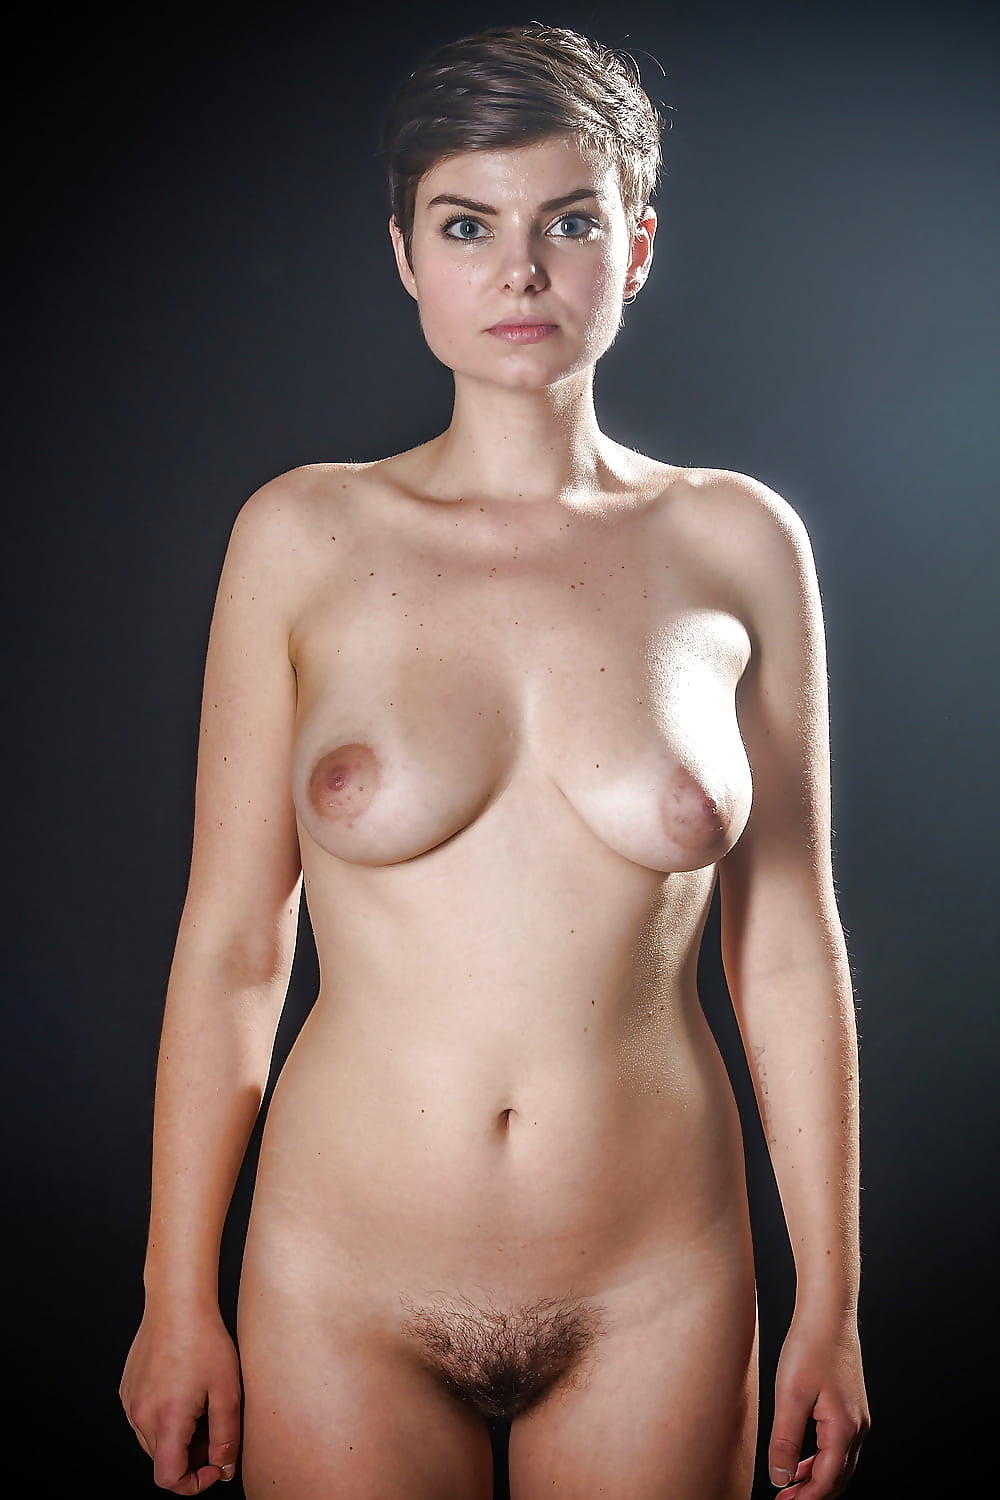 Ebony short hair nude